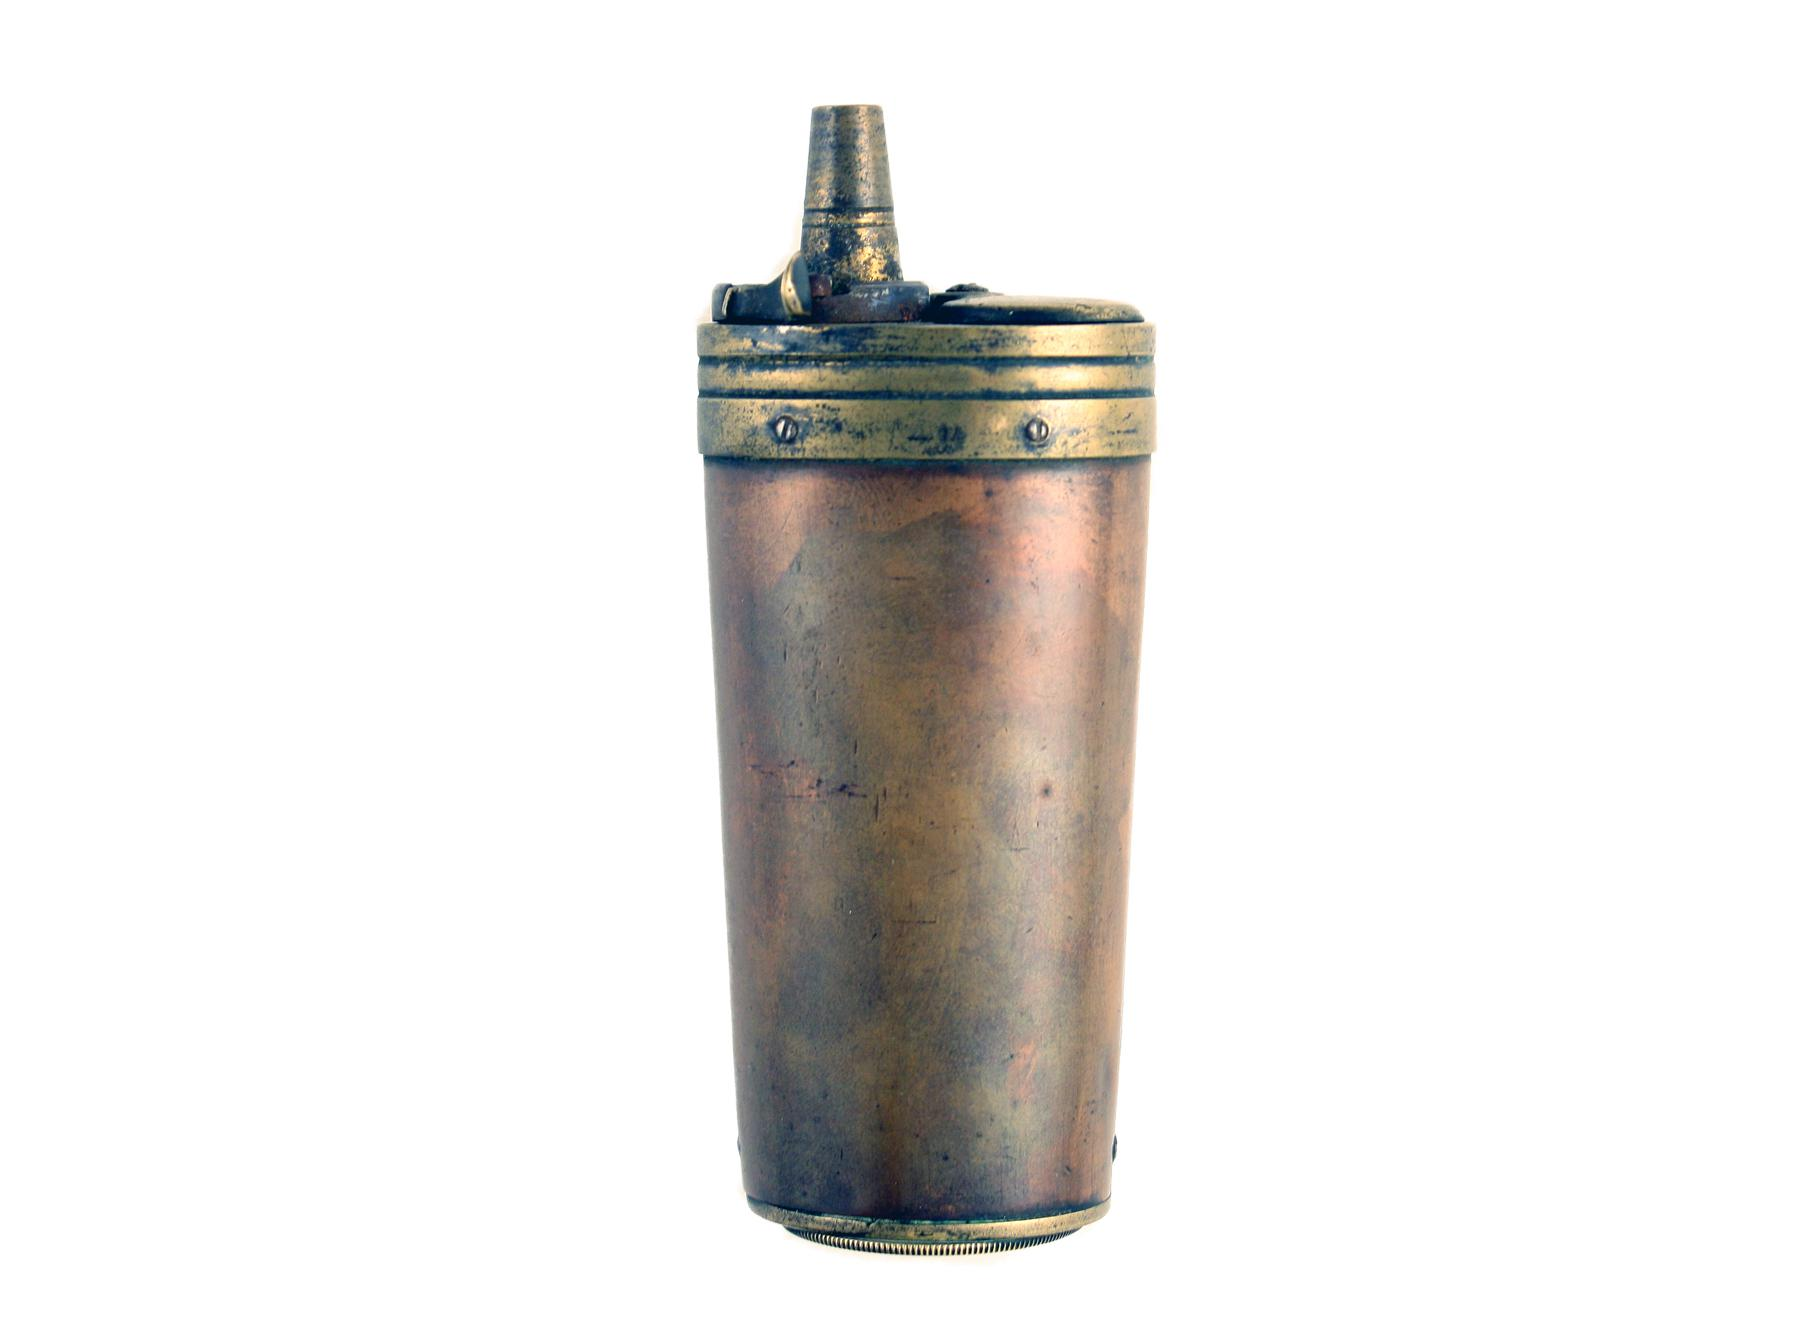 A Three-Way Flask